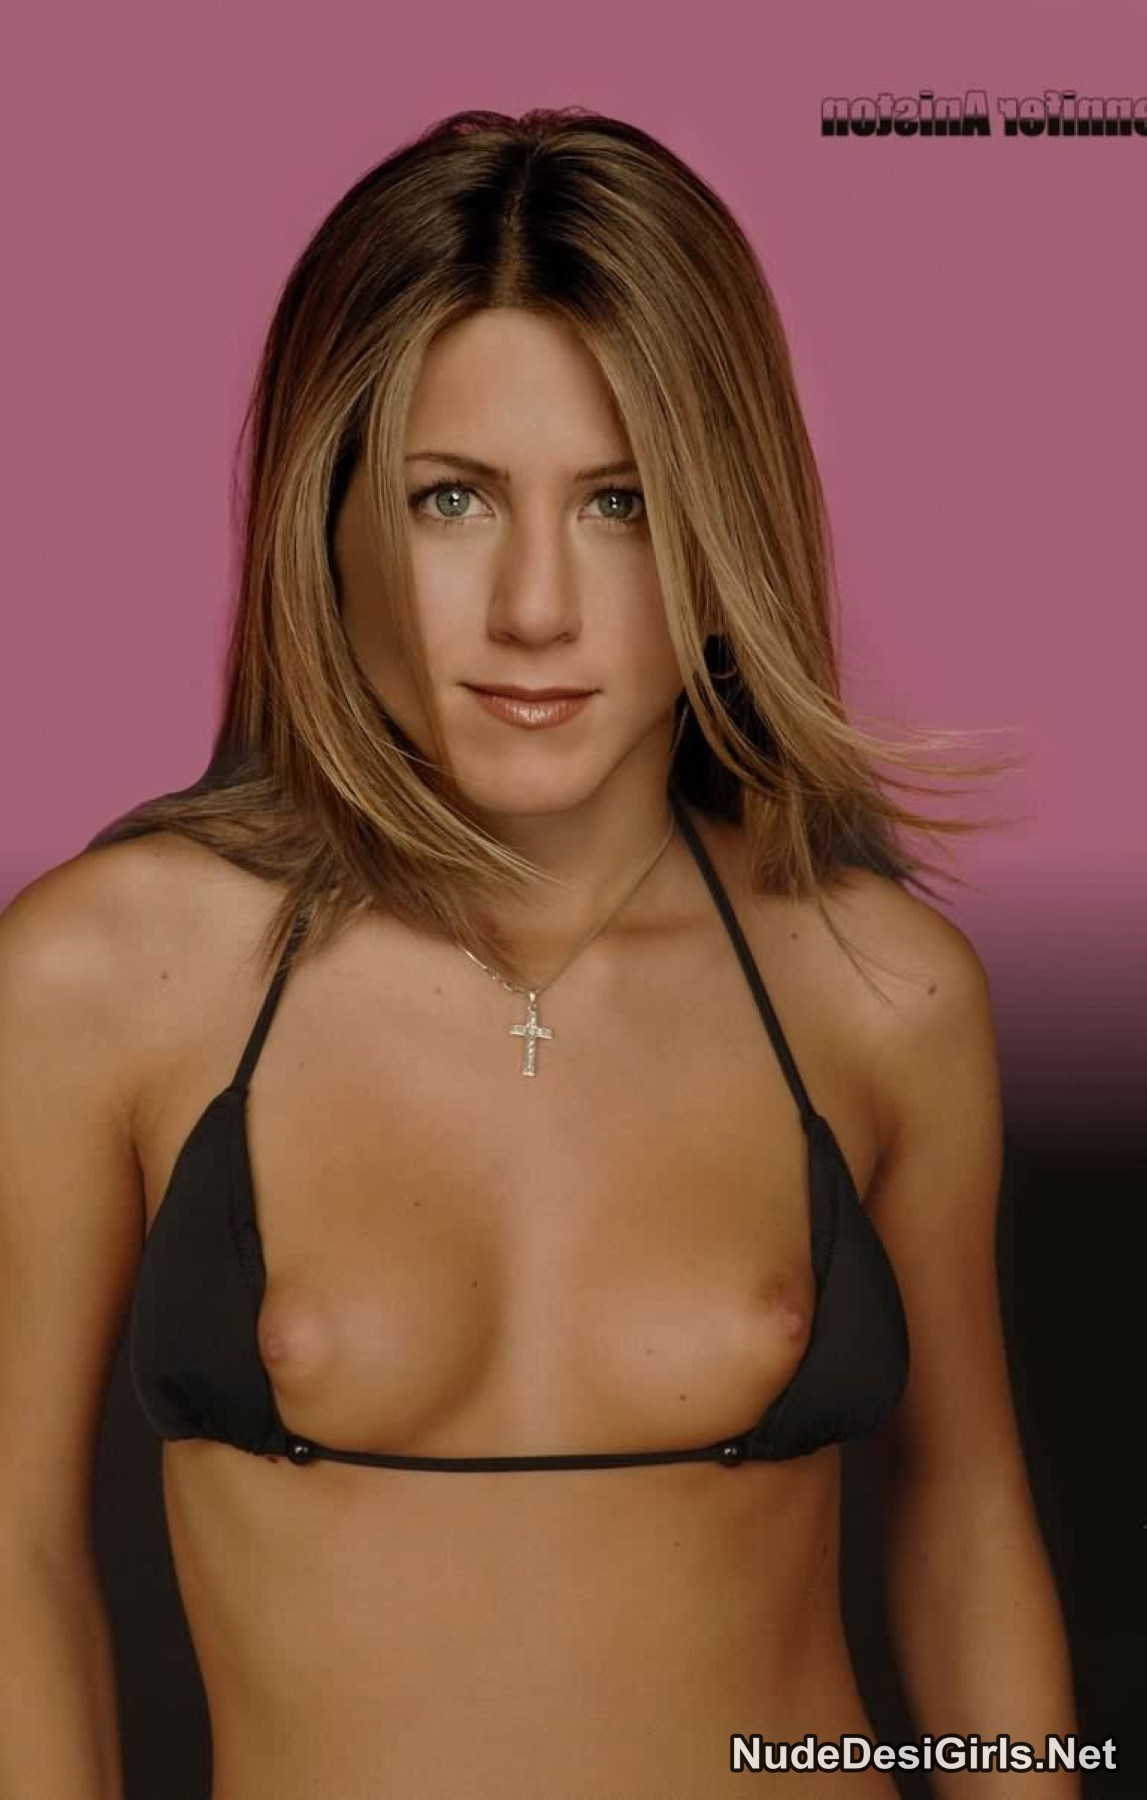 jennifer aniston sexiest movie kostenlos bondage tube pornos